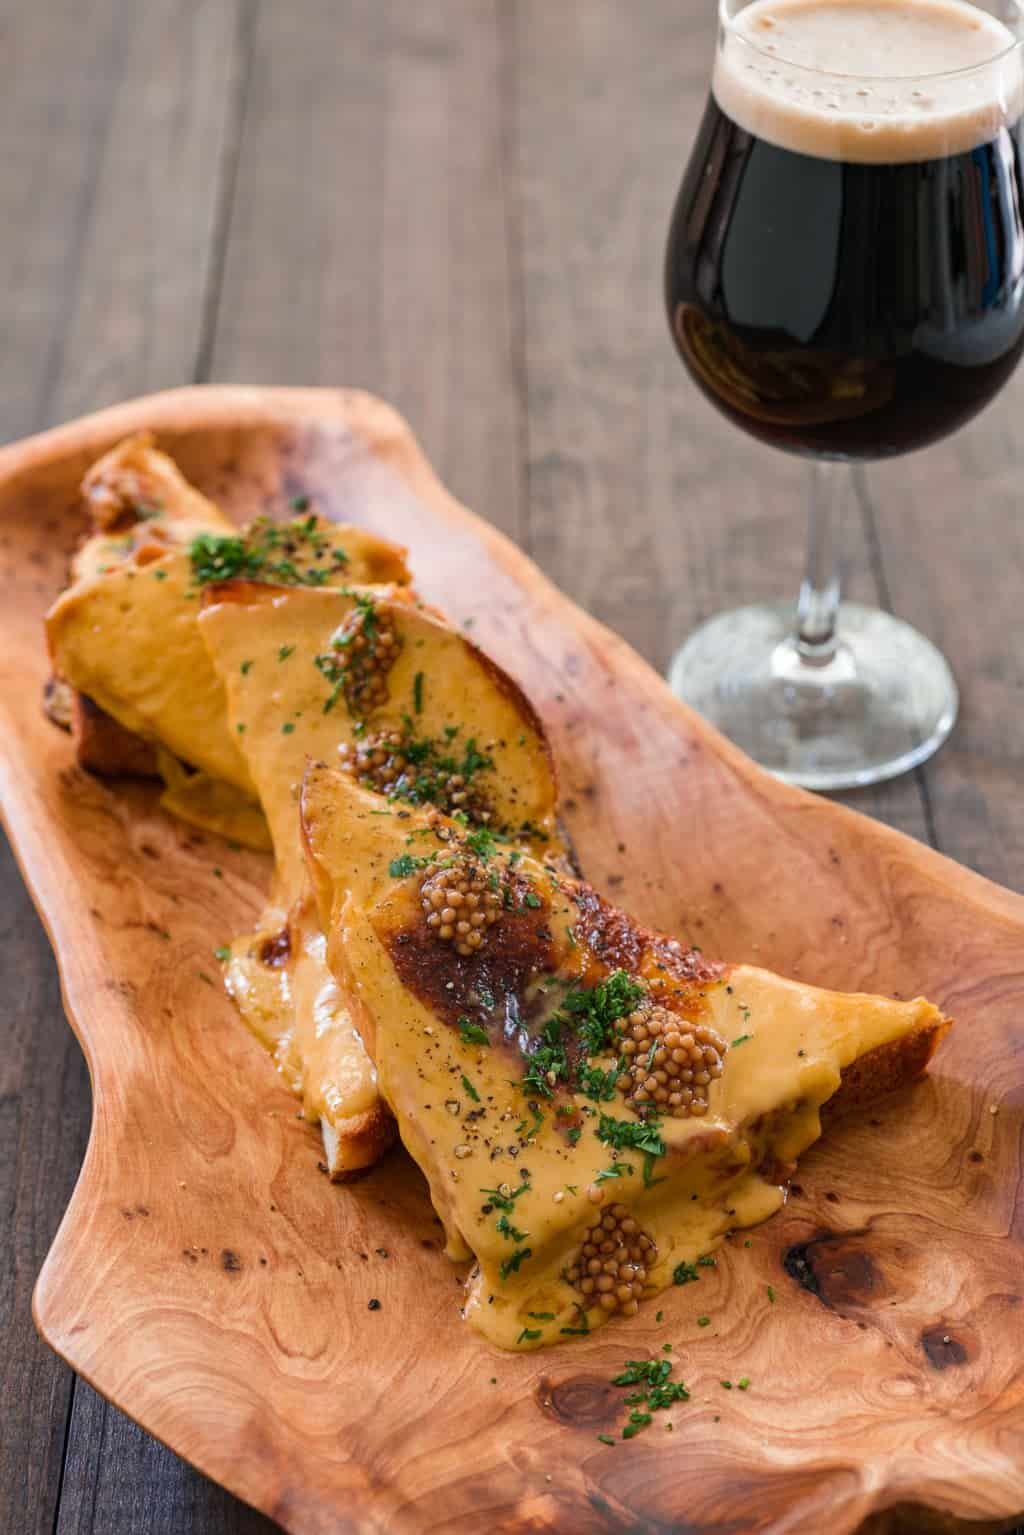 A delicious melty mess, Welsh Rabbit is an easy pub favorite with a stout infused cheese sauce browned on toasts (and no bunny rabbits).